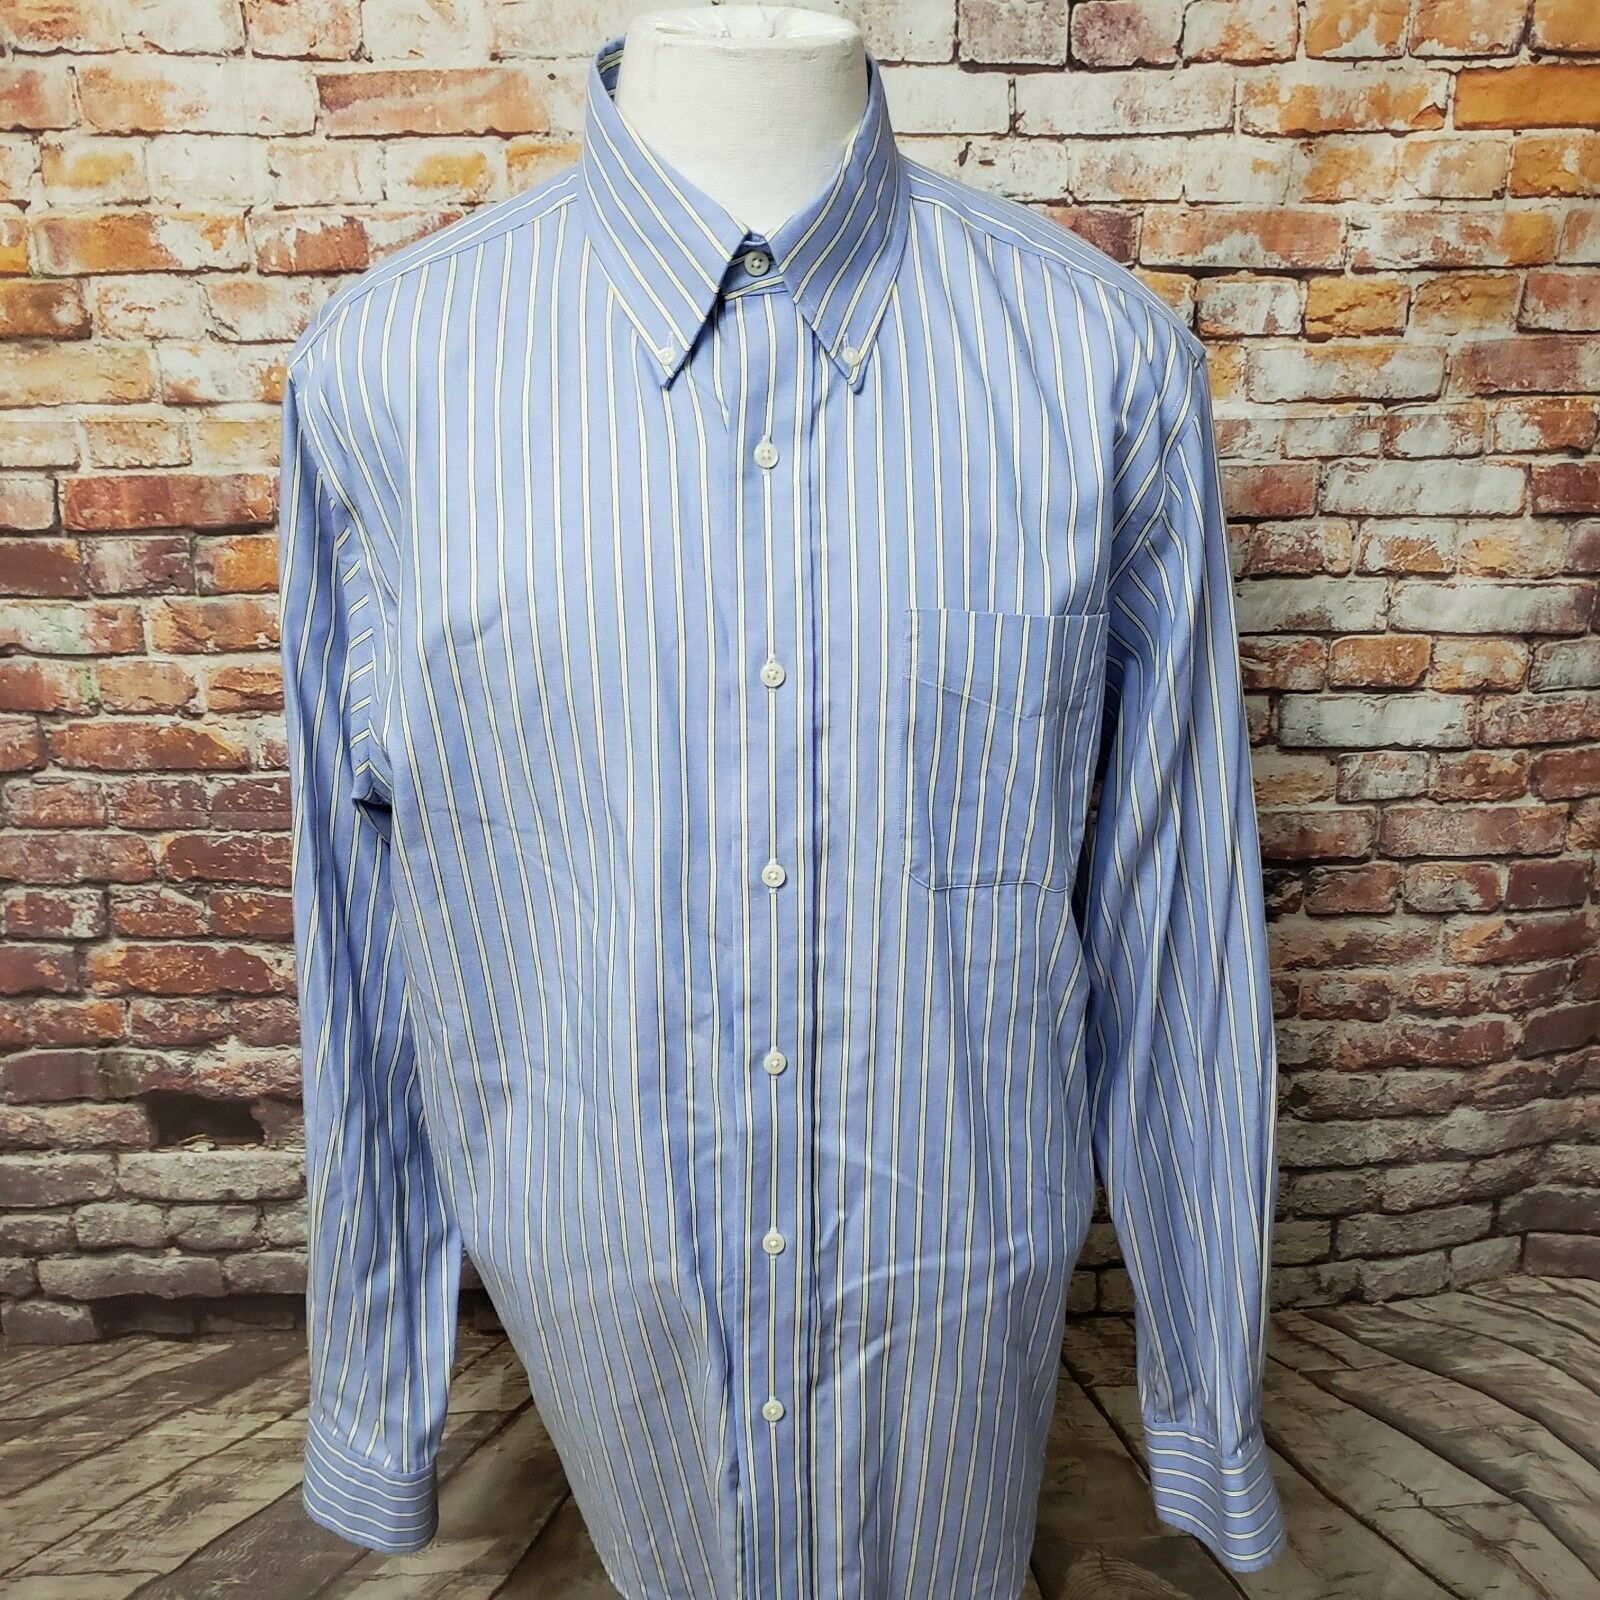 1e3ed202434 LAUREN RALPH LAUREN MEN S STRIPED NON IRON DRESS SHIRT SIZE 17-36 37 A29-